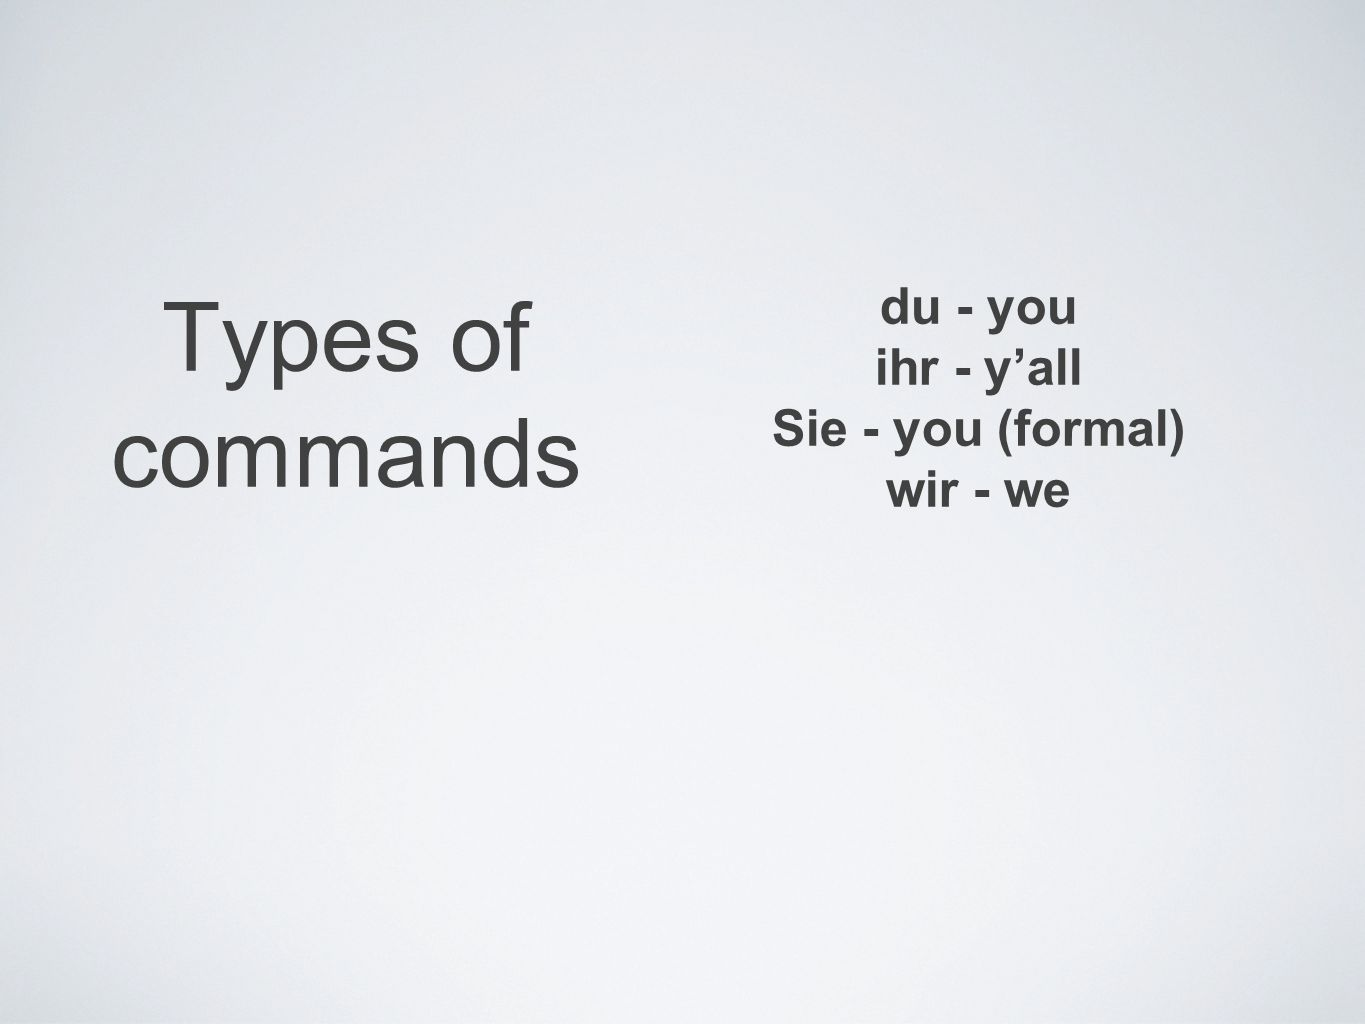 Types of commands du - you ihr - y'all Sie - you (formal) wir - we